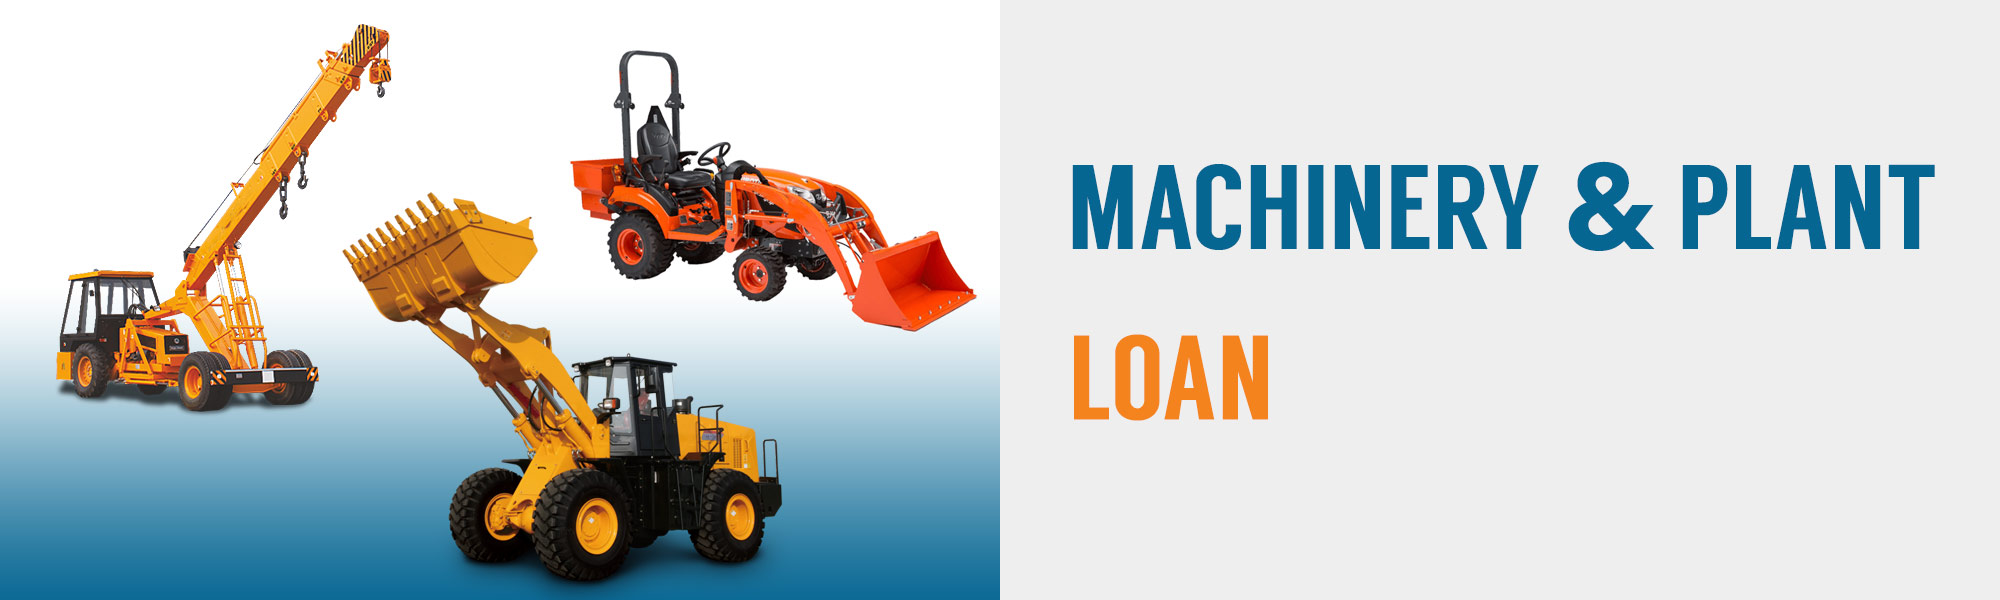 Machinery and Plant Loan